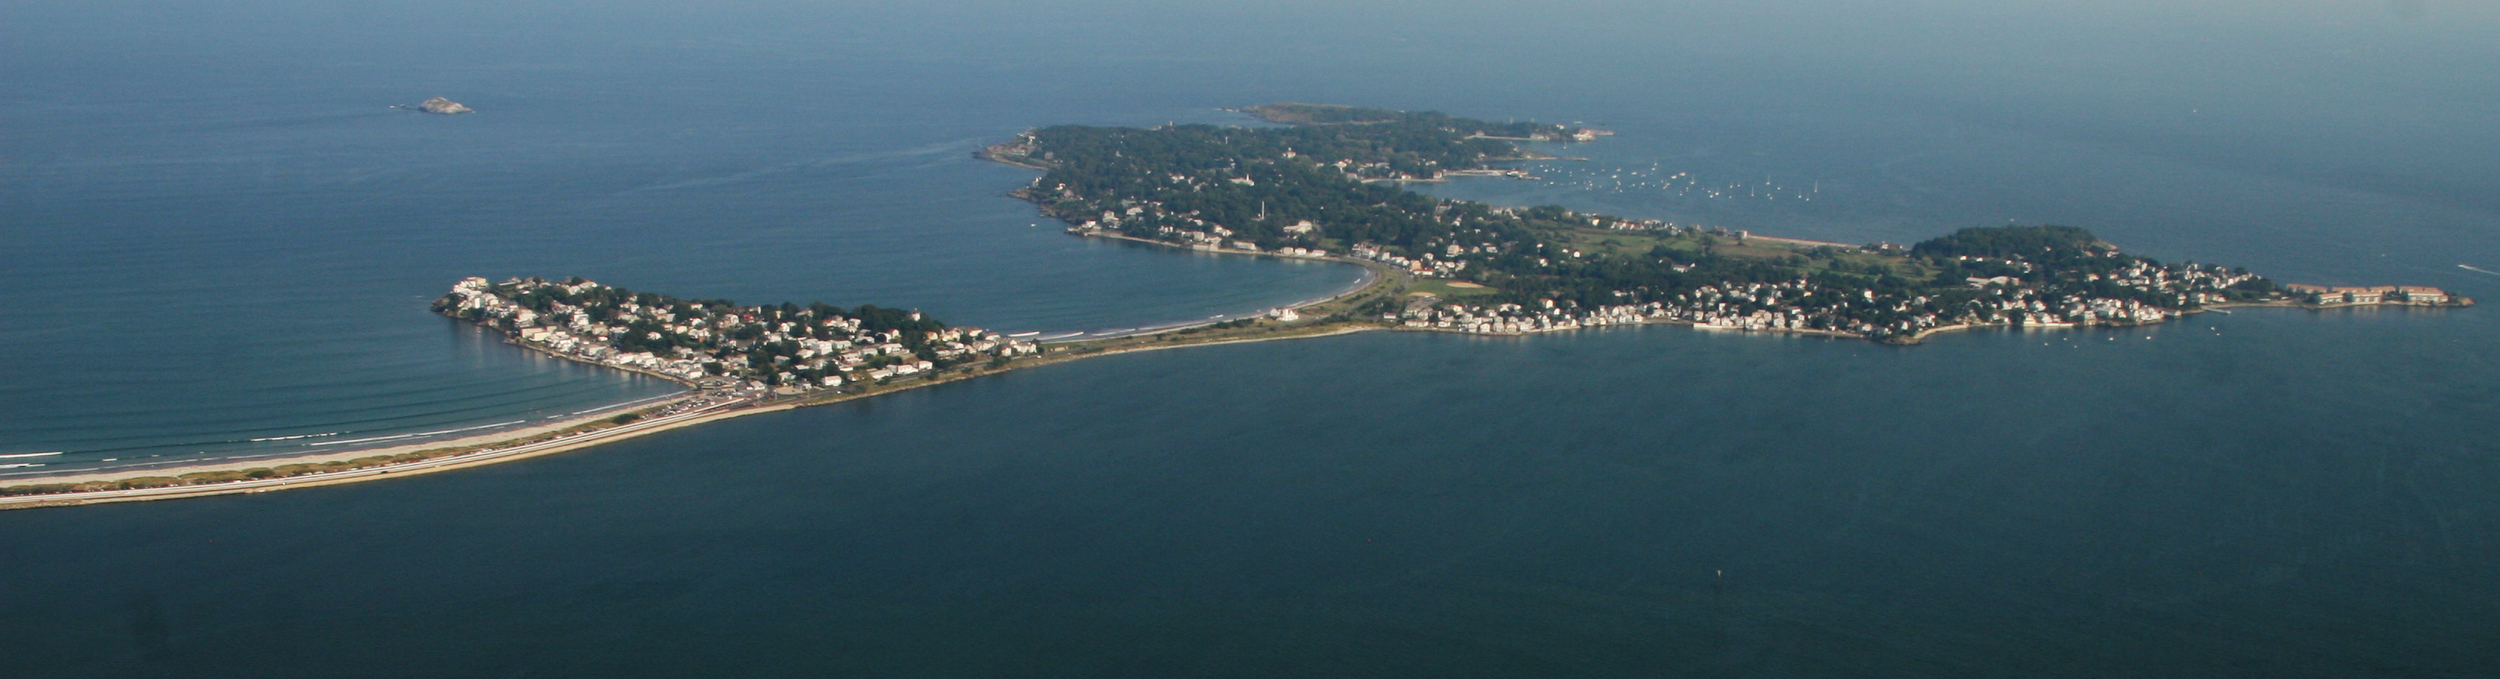 aerial view of nahant, ma